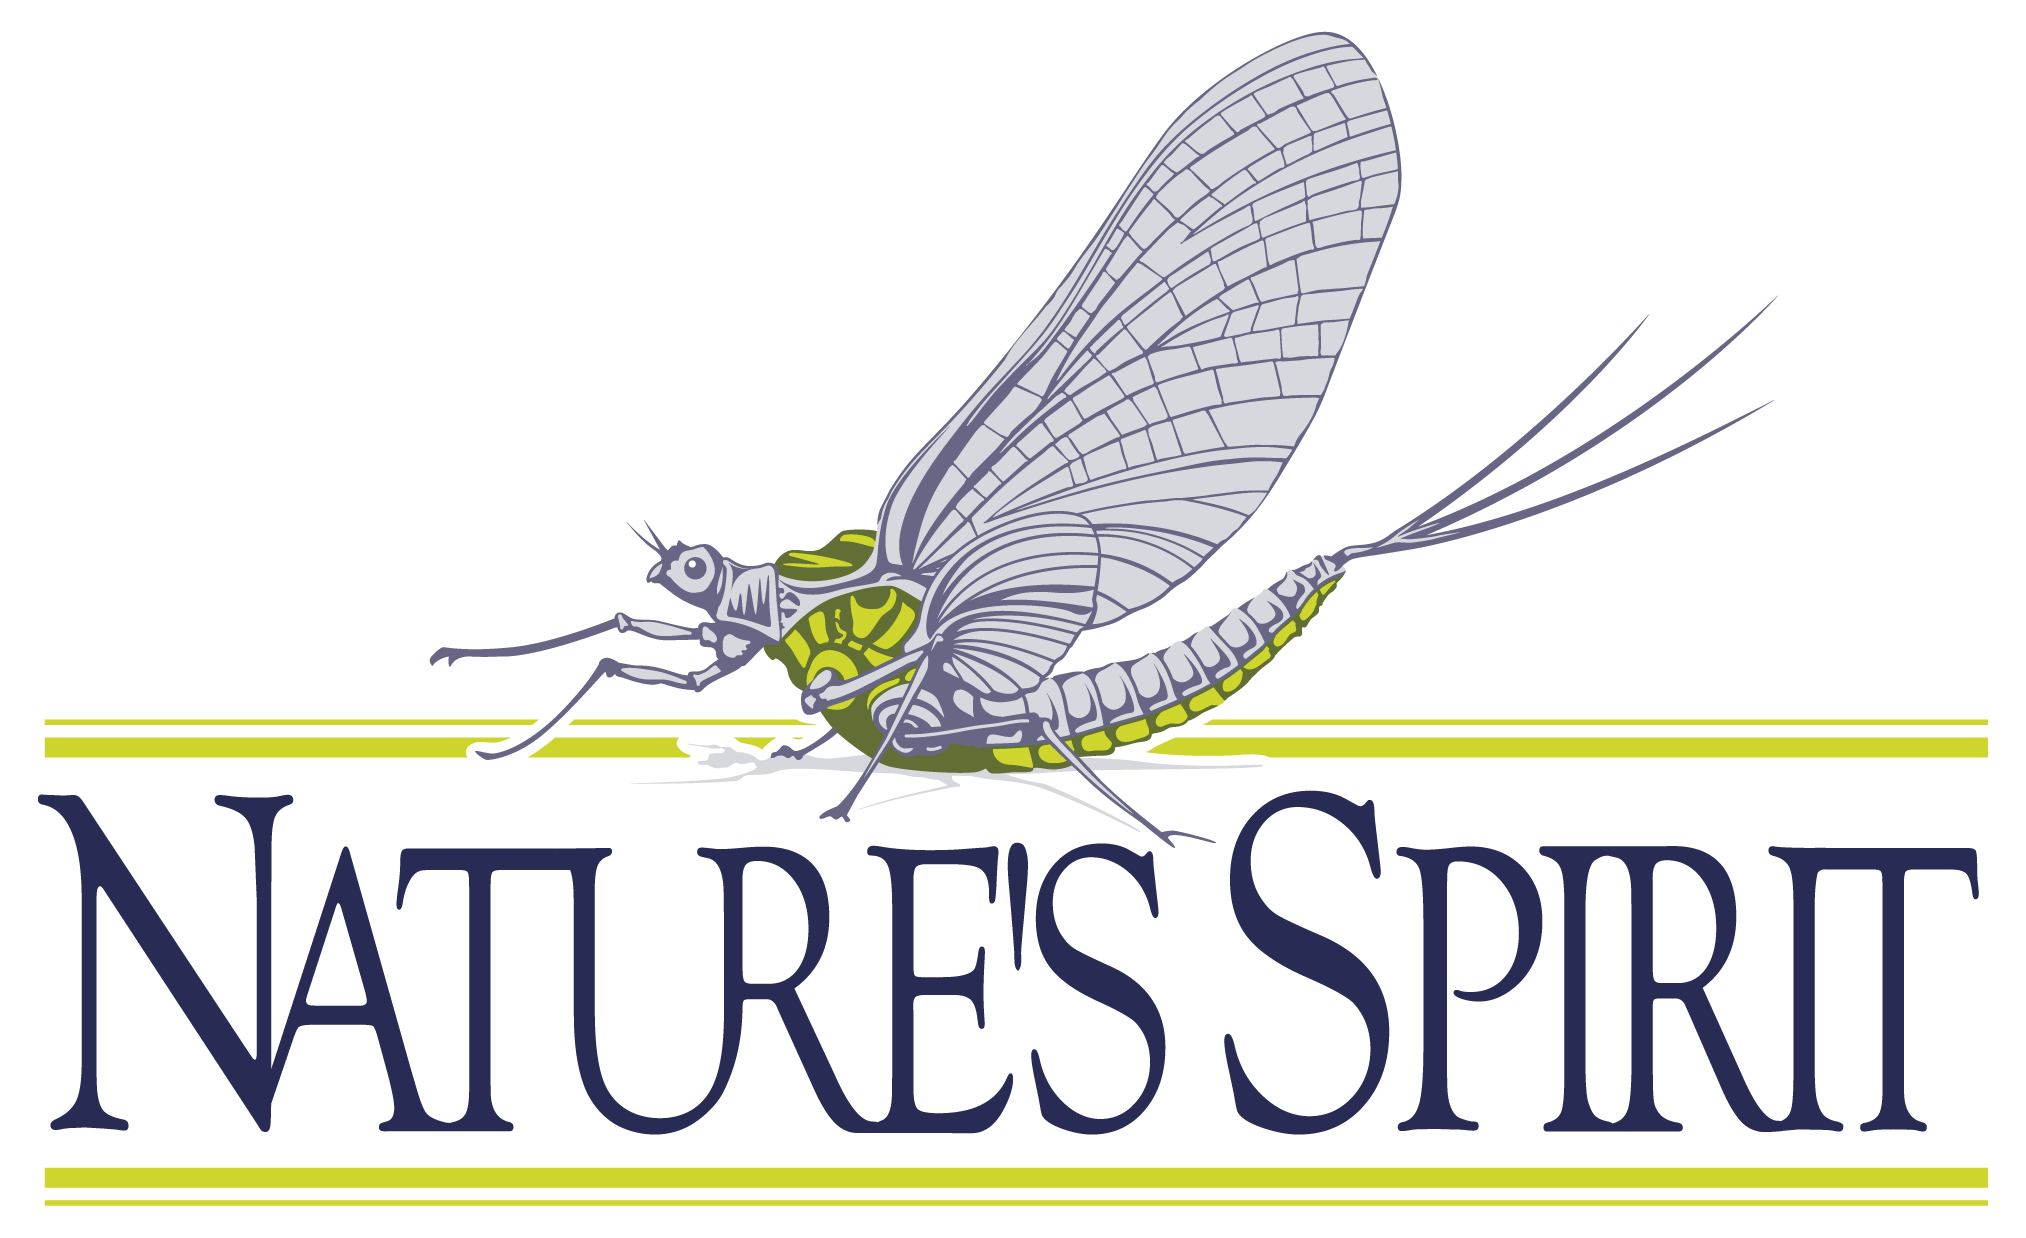 I am also proud to be an ambassador with Natures Spirit as a member of the Premium Bug Club. I am excited for this partnership and I look forward to our future relationship.